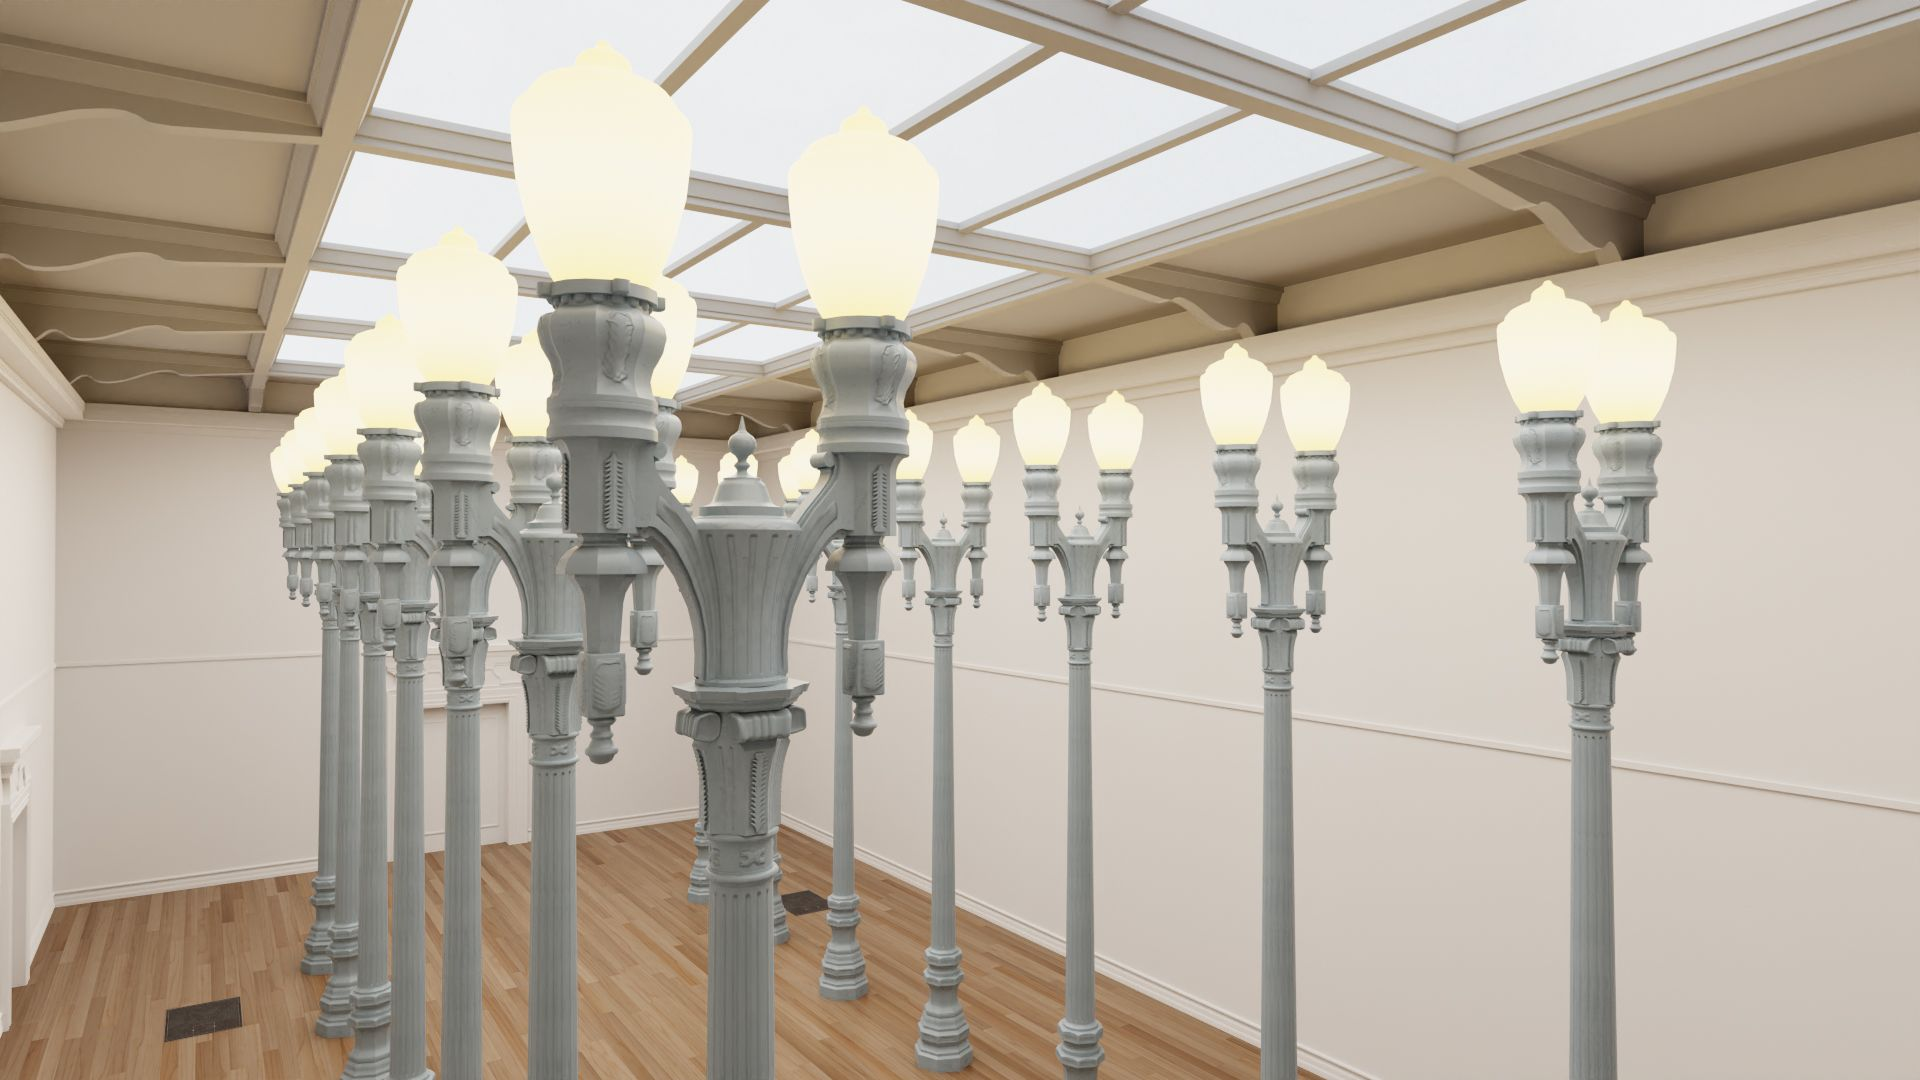 TheVOV's virtual presentation of Chris Burden's 14 Magnolia Doubles as part of the South London Gallery's digital revival of his solo exhibition (2006)